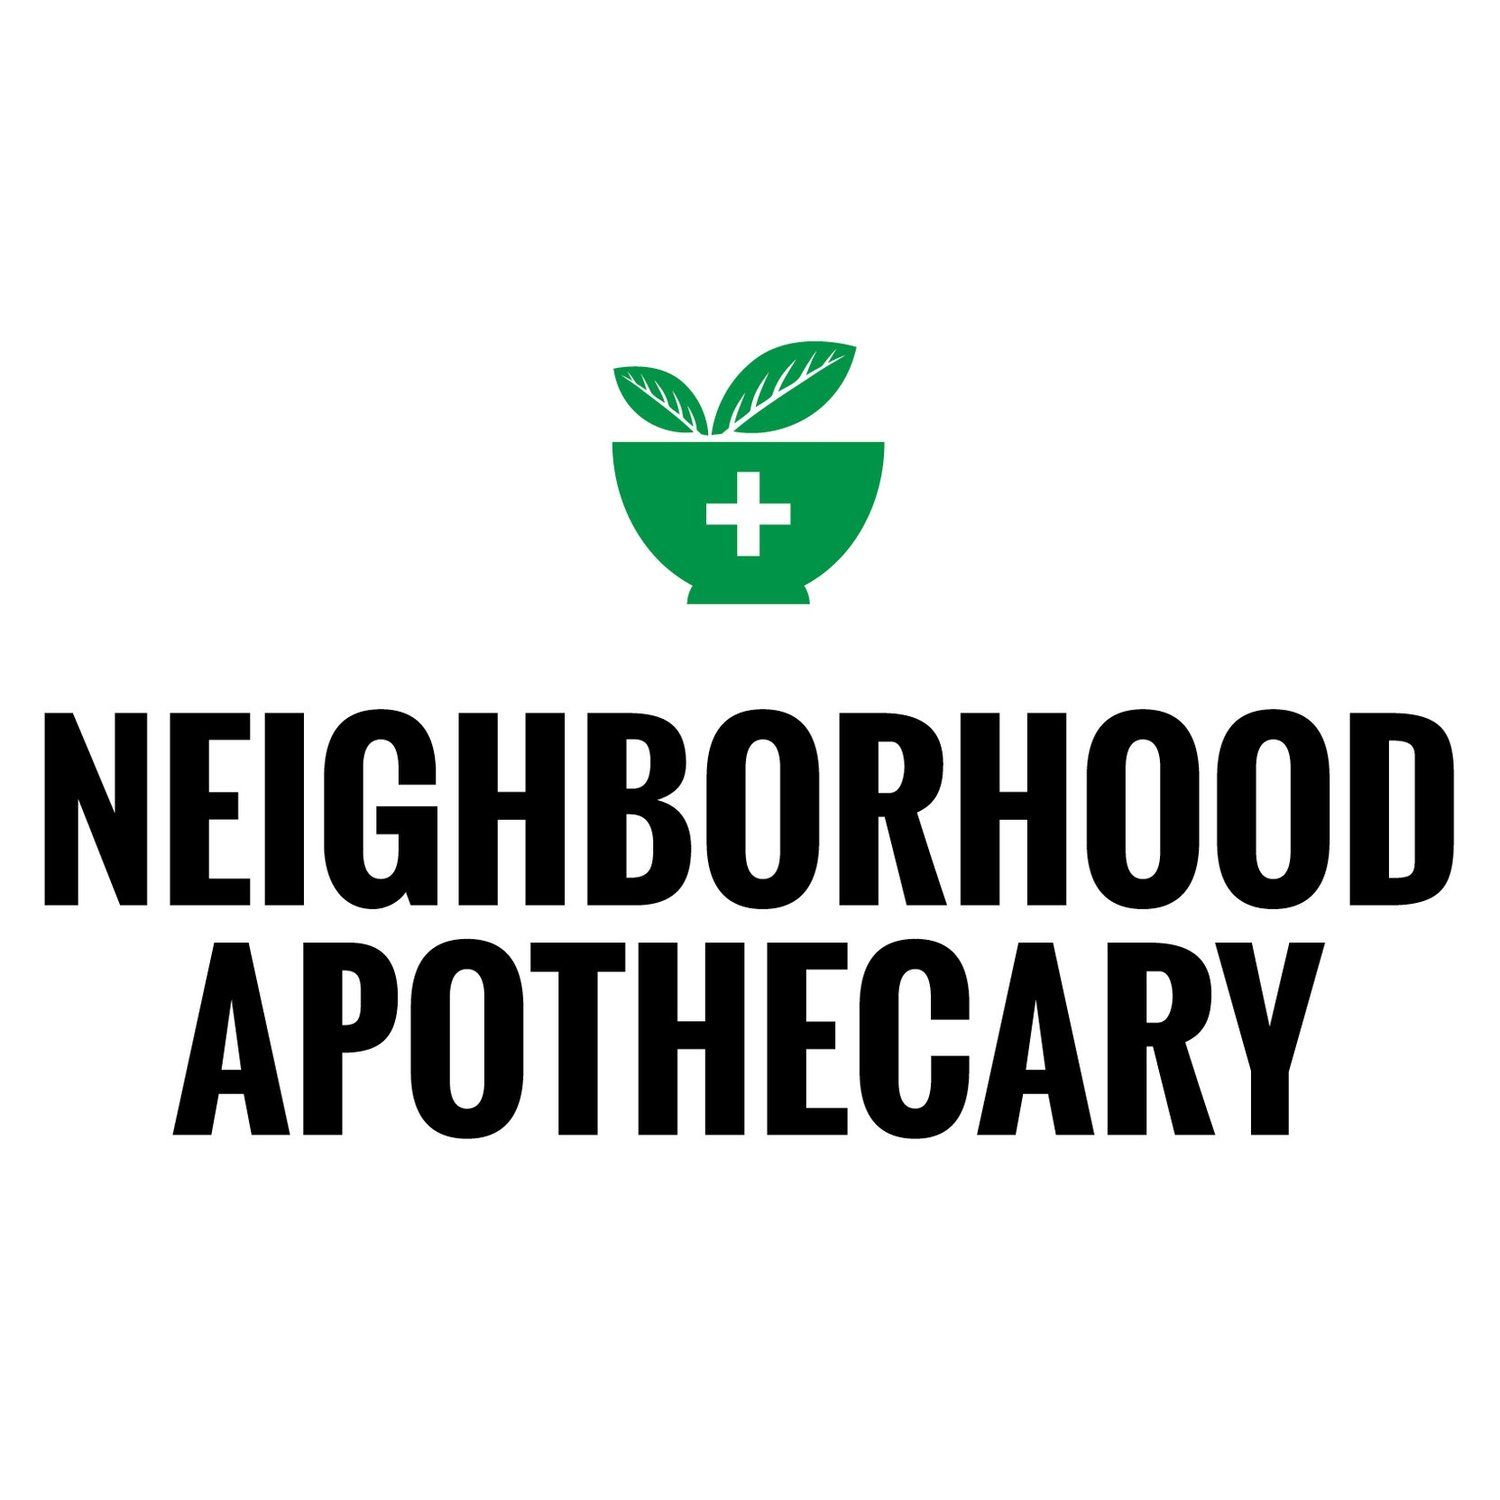 Neighborhood Apothecary